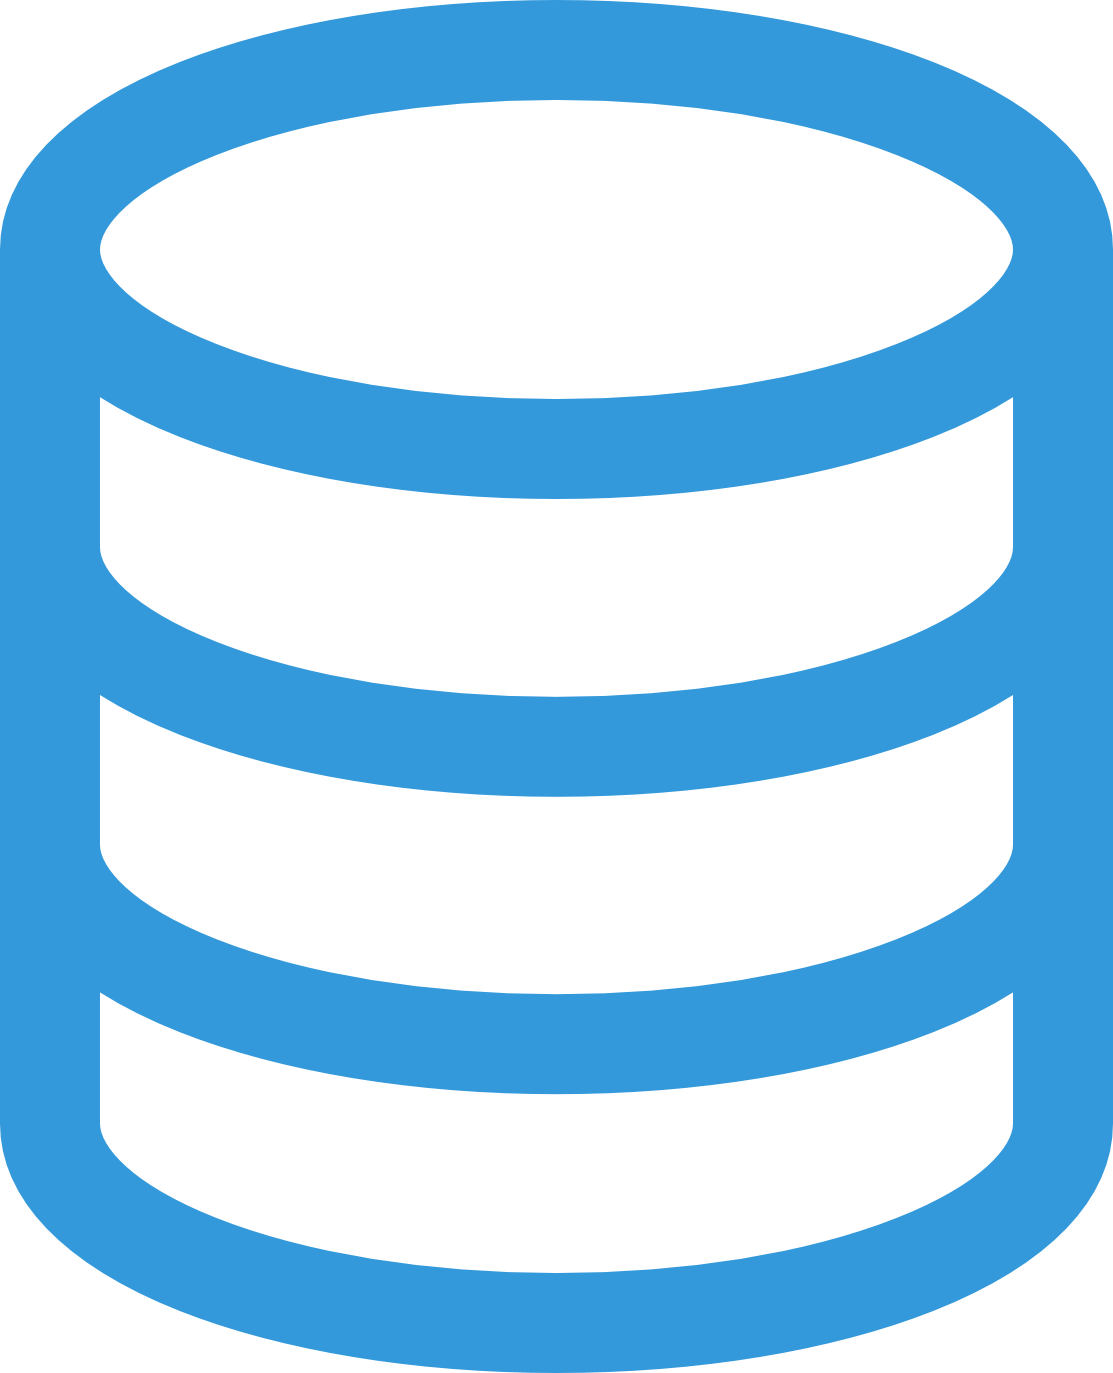 Sql Server Icon Png image #11368